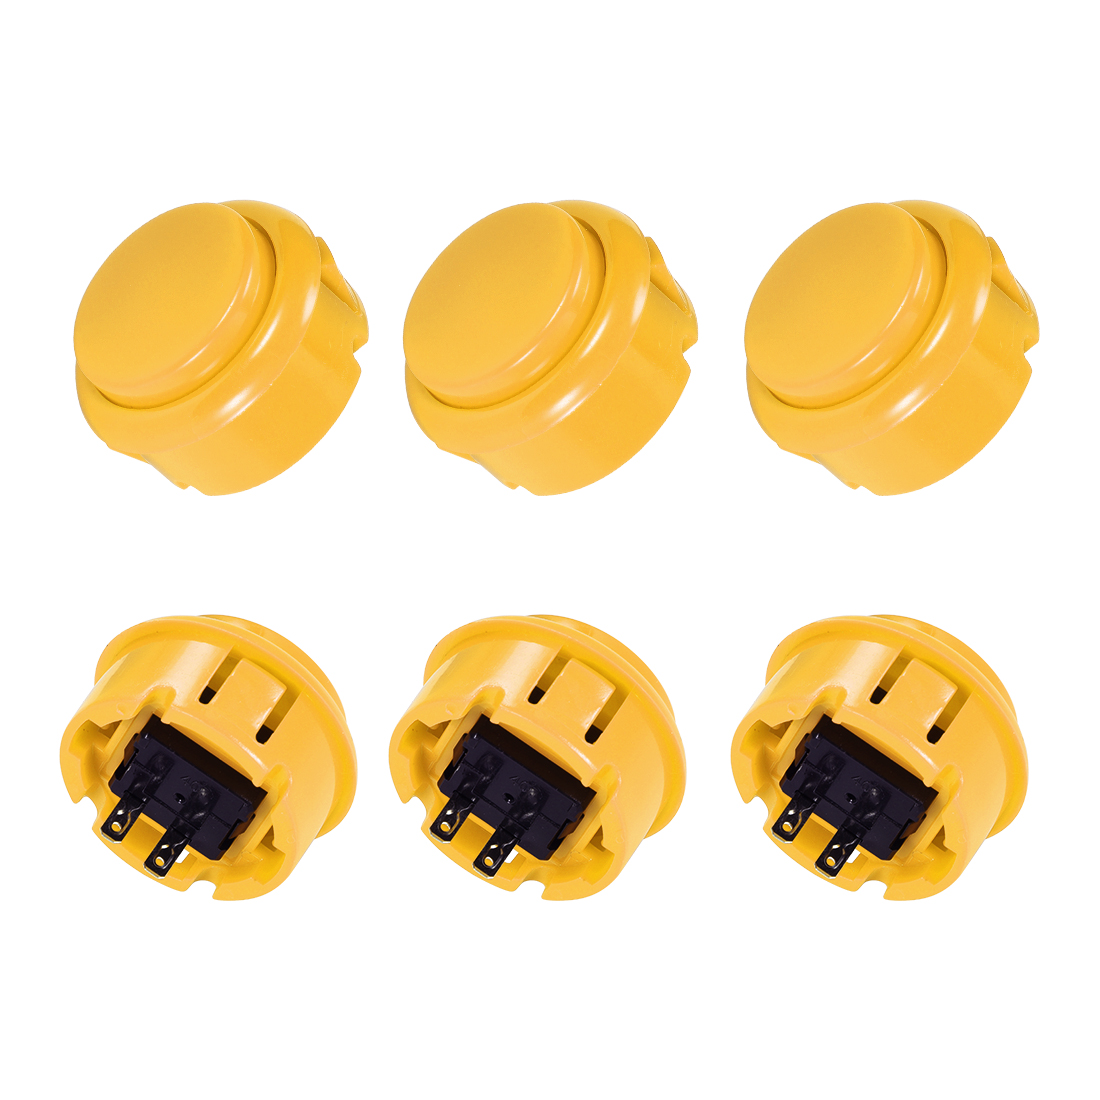 30mm Mounting Momentary Game Push Button Round for Video Games Yellow 6pcs